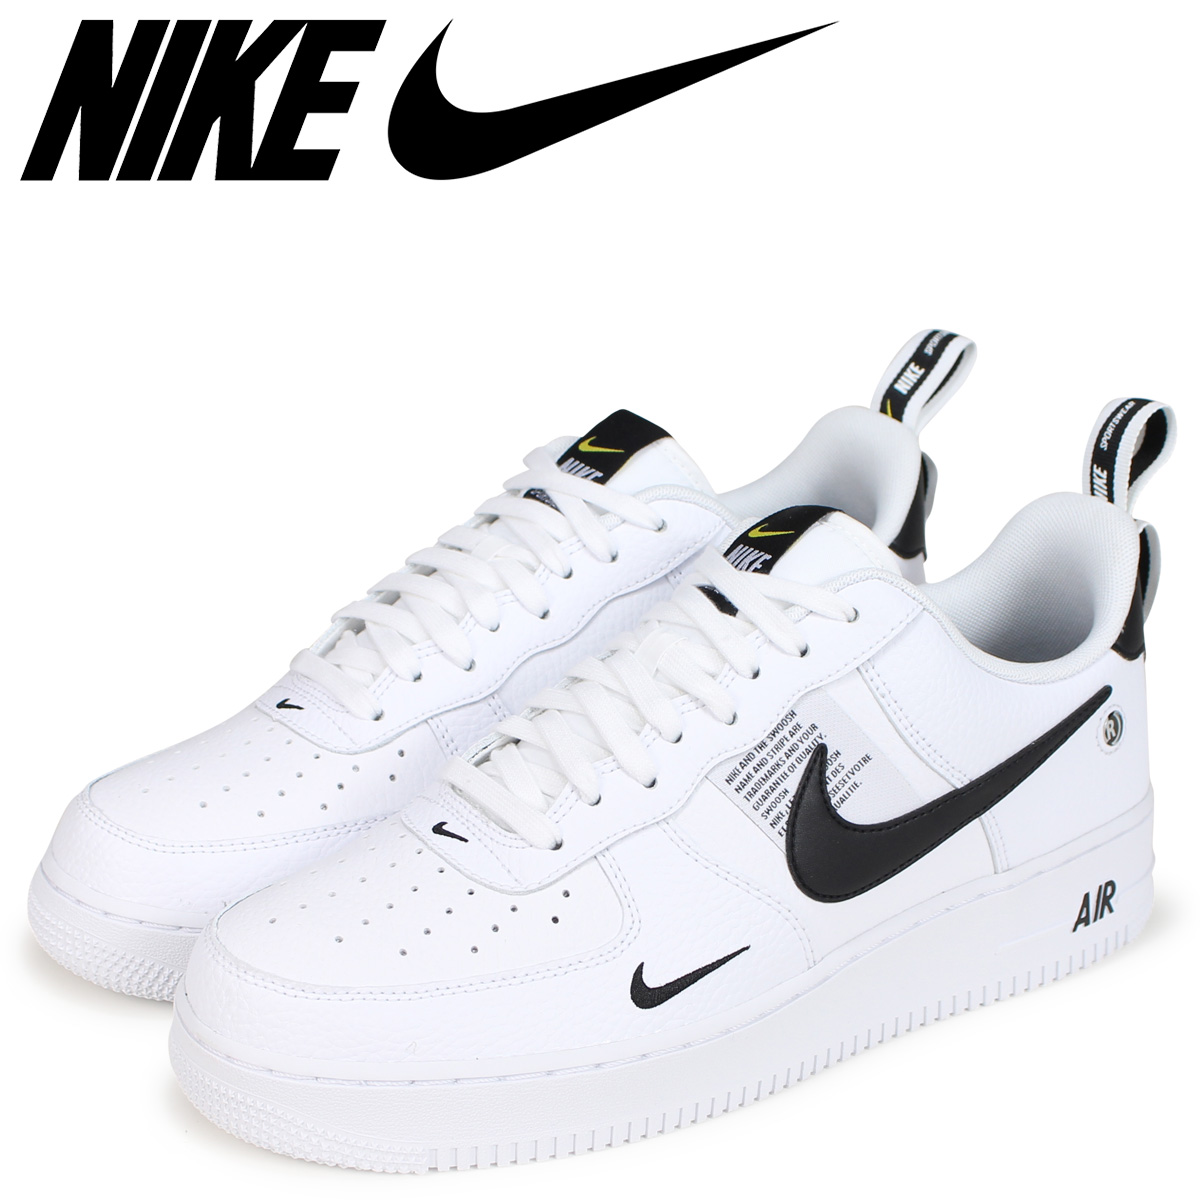 NIKE Nike air force 1 sneakers men AIR FORCE 1 07 LV8 UTILITY AJ7747 100 white white